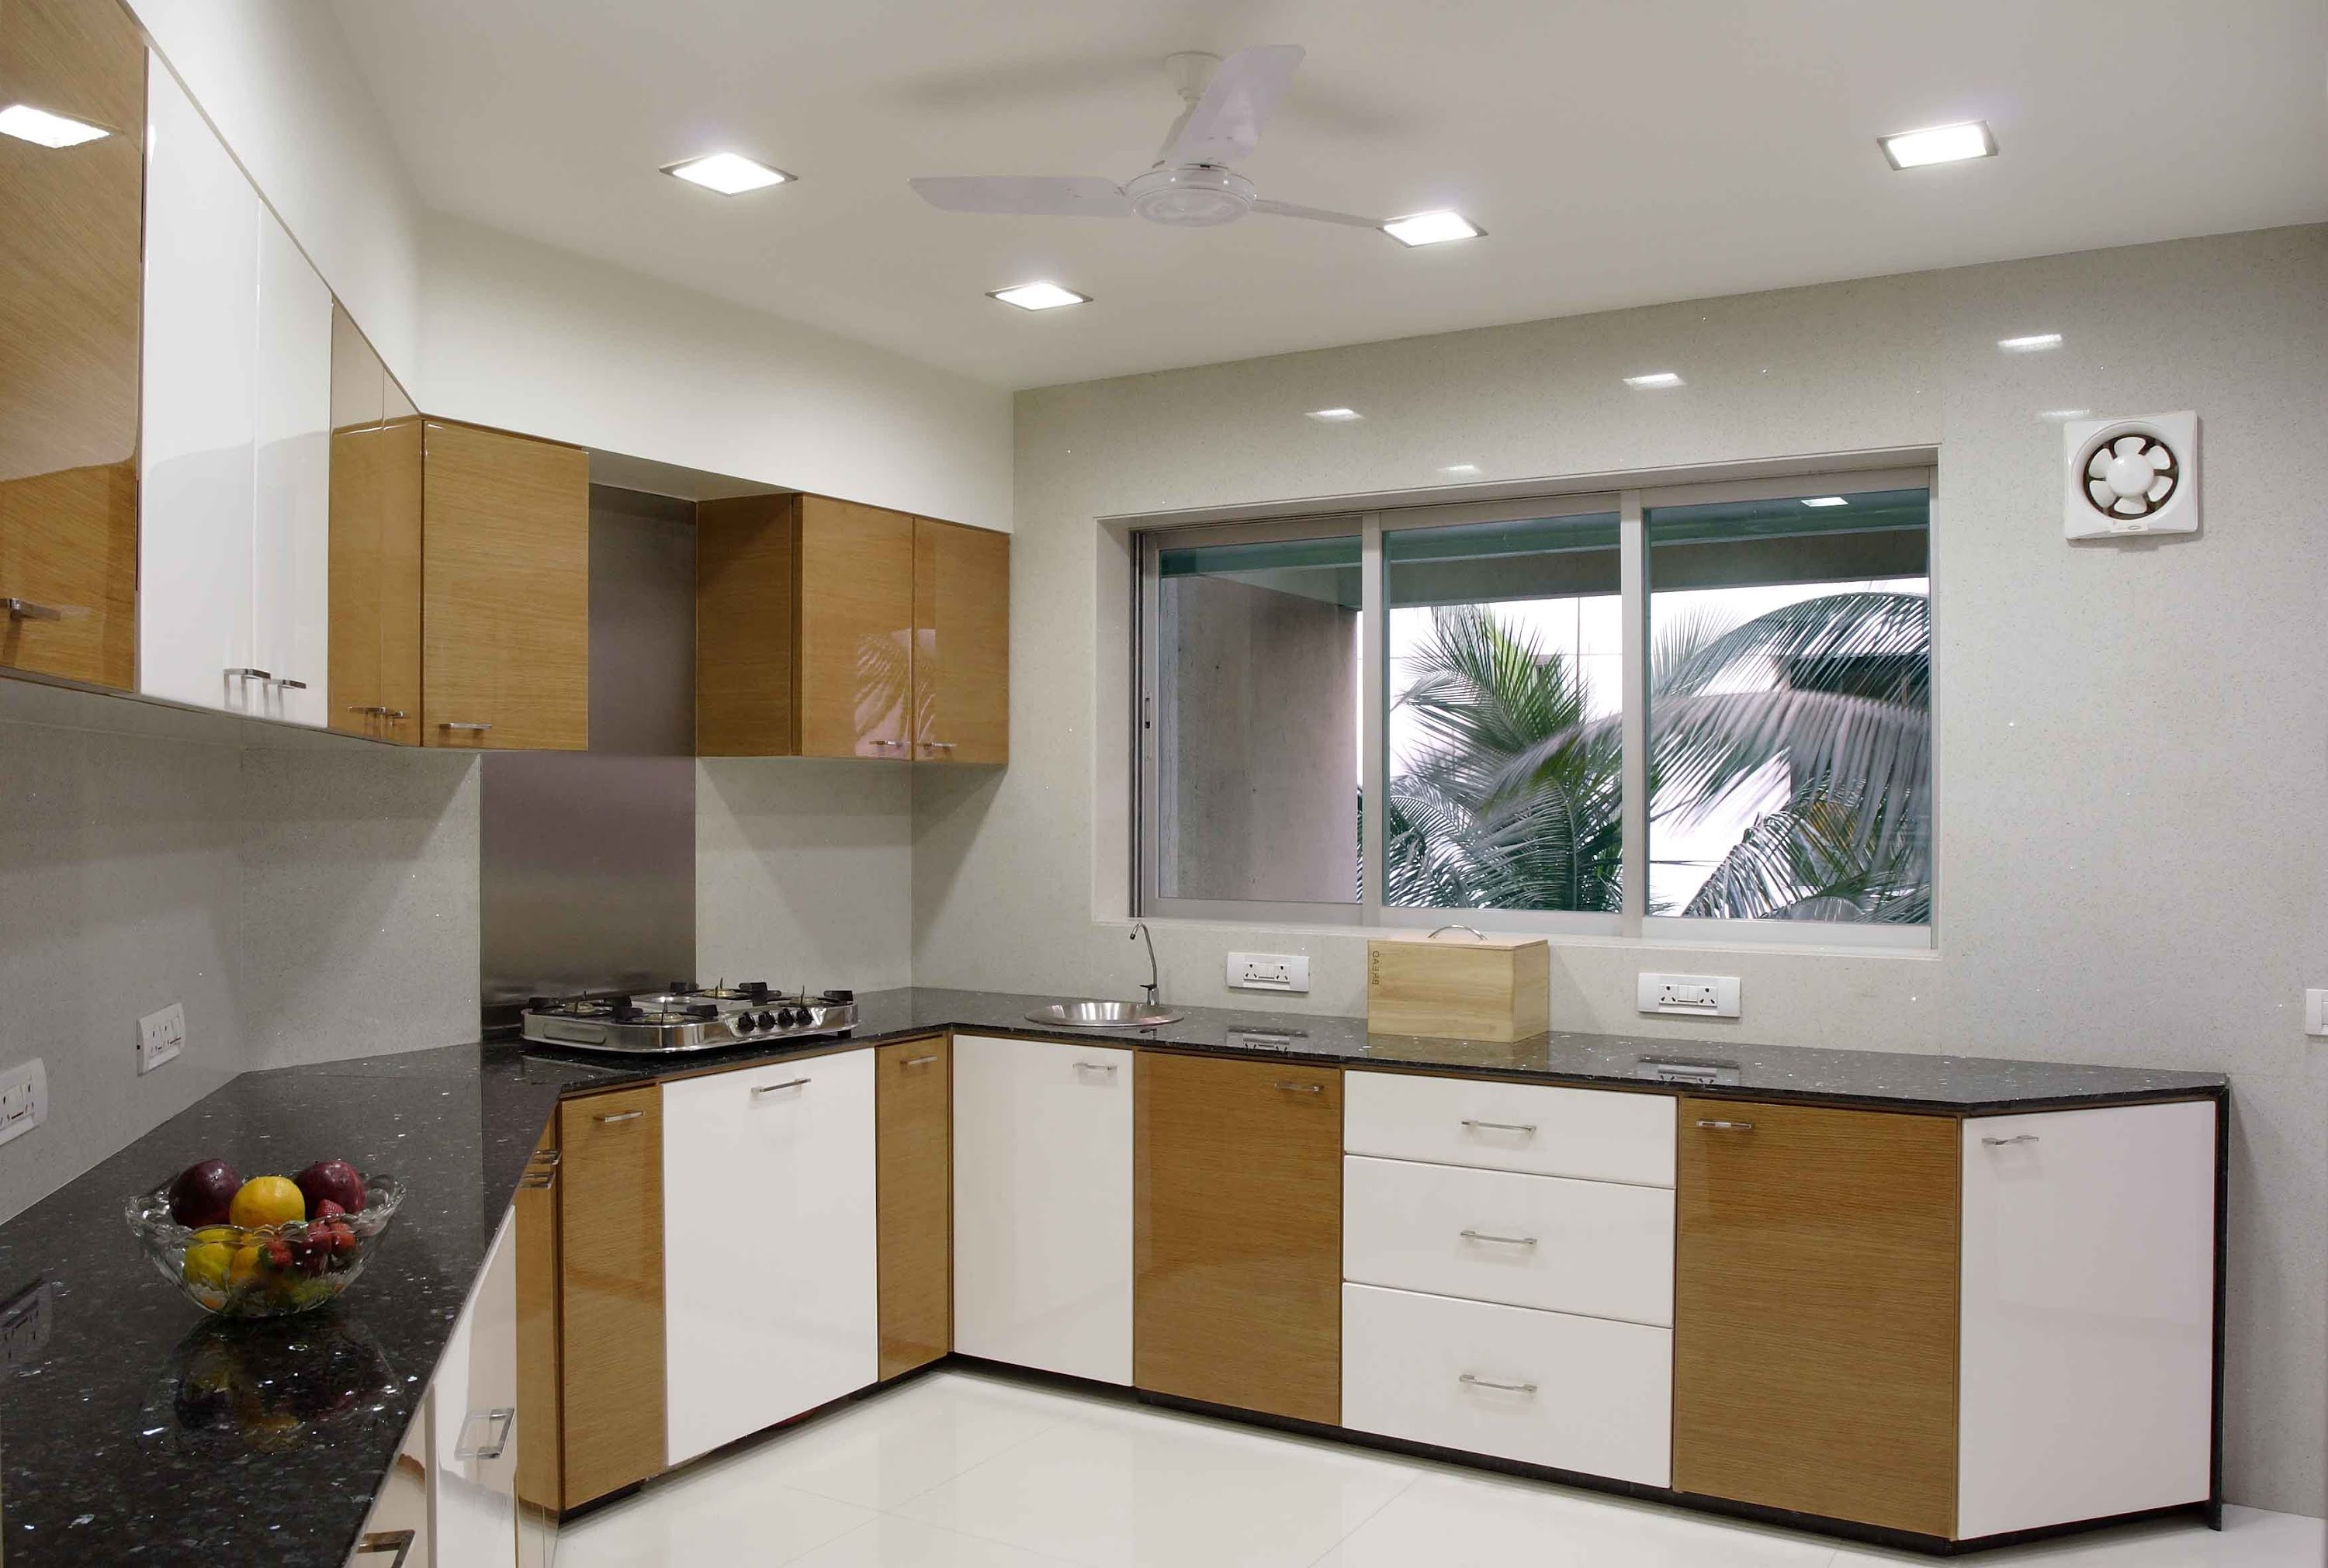 kitchens designs kitchen design ideas for small kitchens YYKUAGT